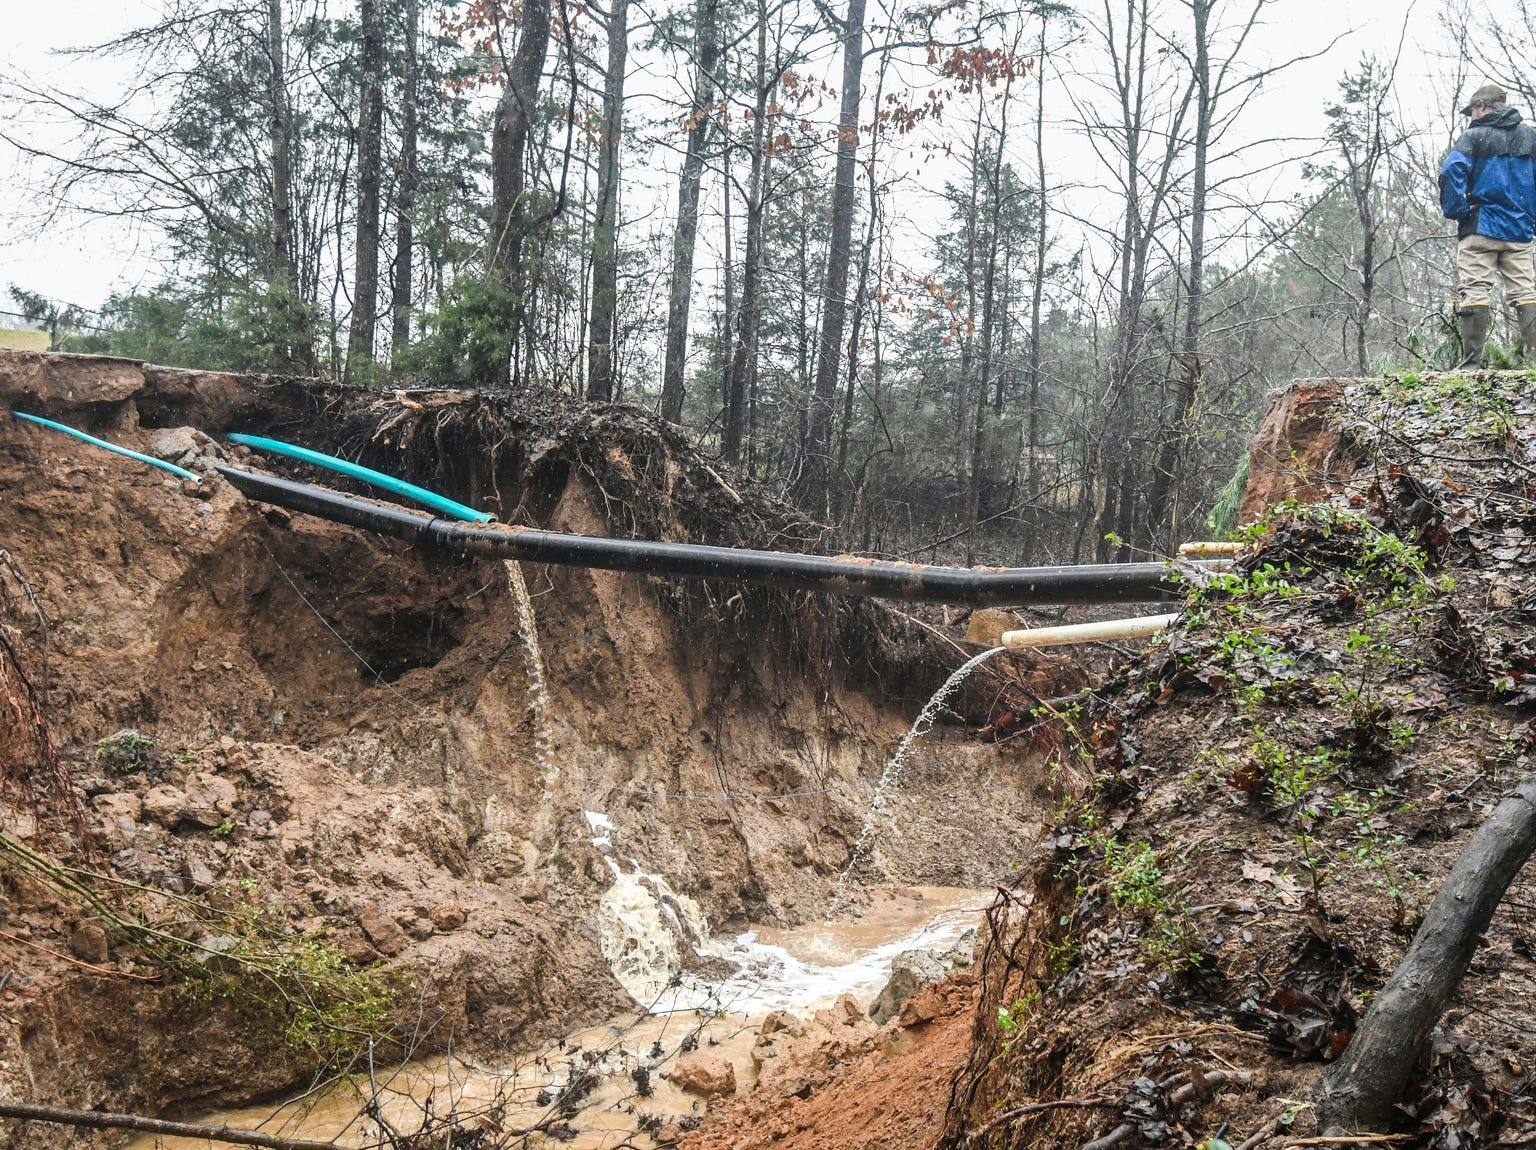 Hunter Maples looks over a water line break caused by heavy rainfall near the Max Hipp Industrial Park in Oxford, Miss. on Saturday, Feb. 23, 2019. The city of Oxford has issued a self-imposed precautionary boil-water notice for all customers that receive water from the city of Oxford, including those customers outside the city limits. (Bruce Newman/The Oxford Eagle via AP)